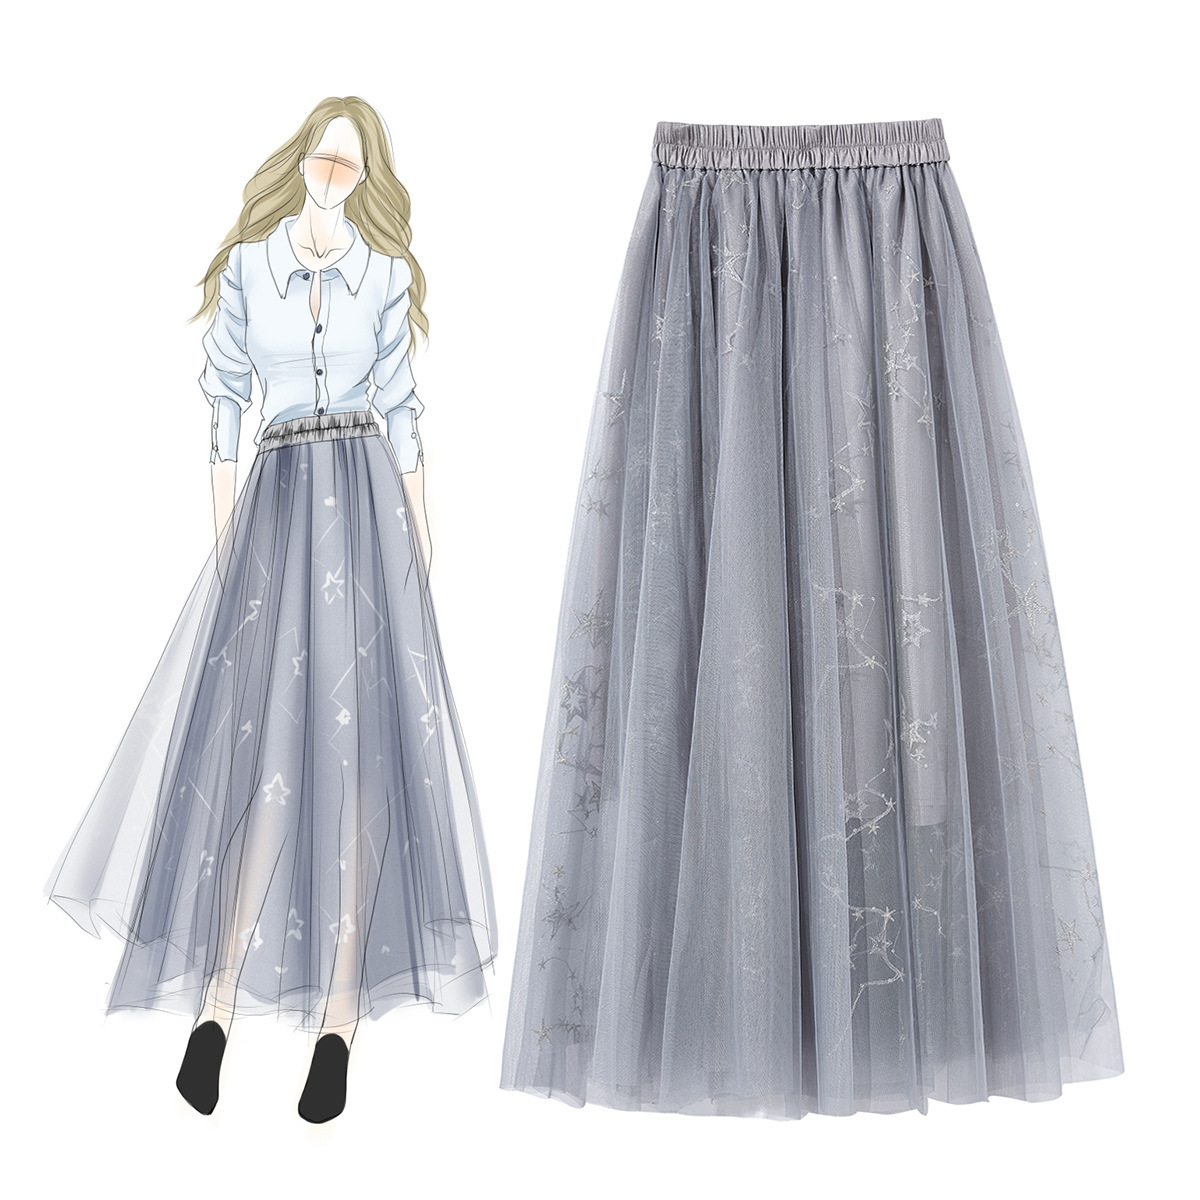 Fashion Boutique Women's Clothes Spring Summer New Mesh Yarn Elastic Waist Pendulum Fairy Skirt Price $65.00